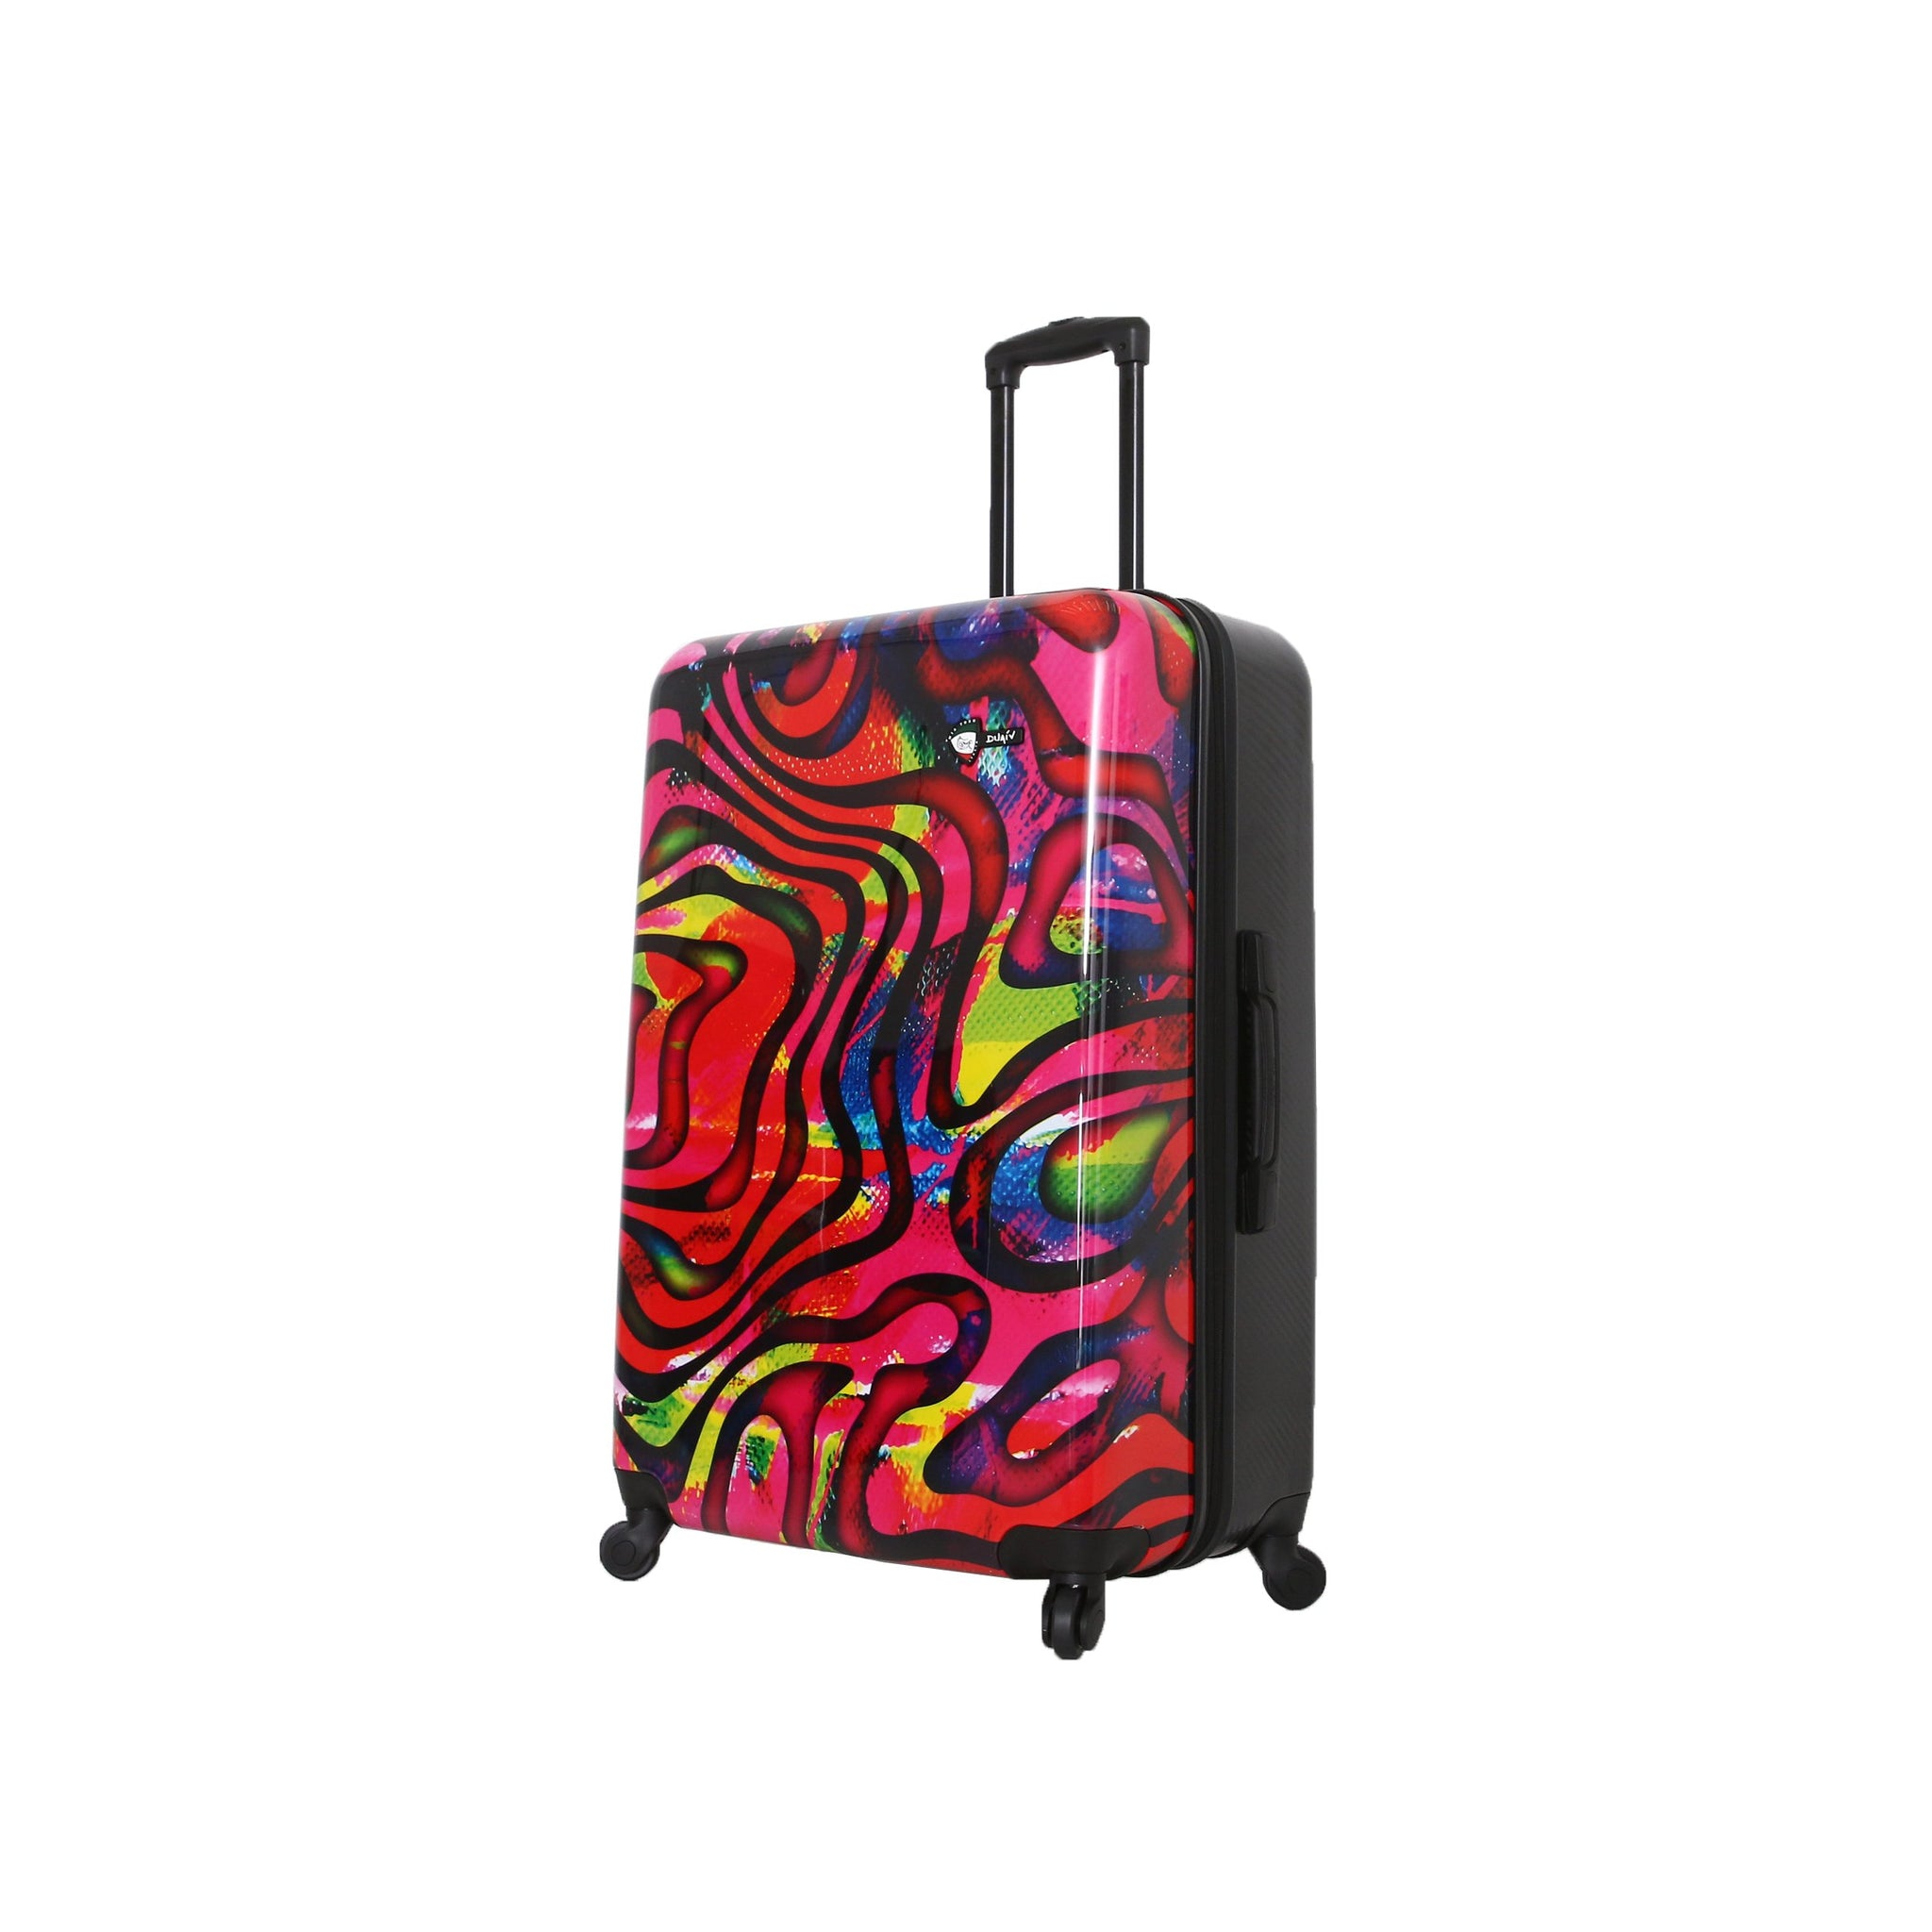 "Duaiv Zebre 28"" Spinner Luggage"